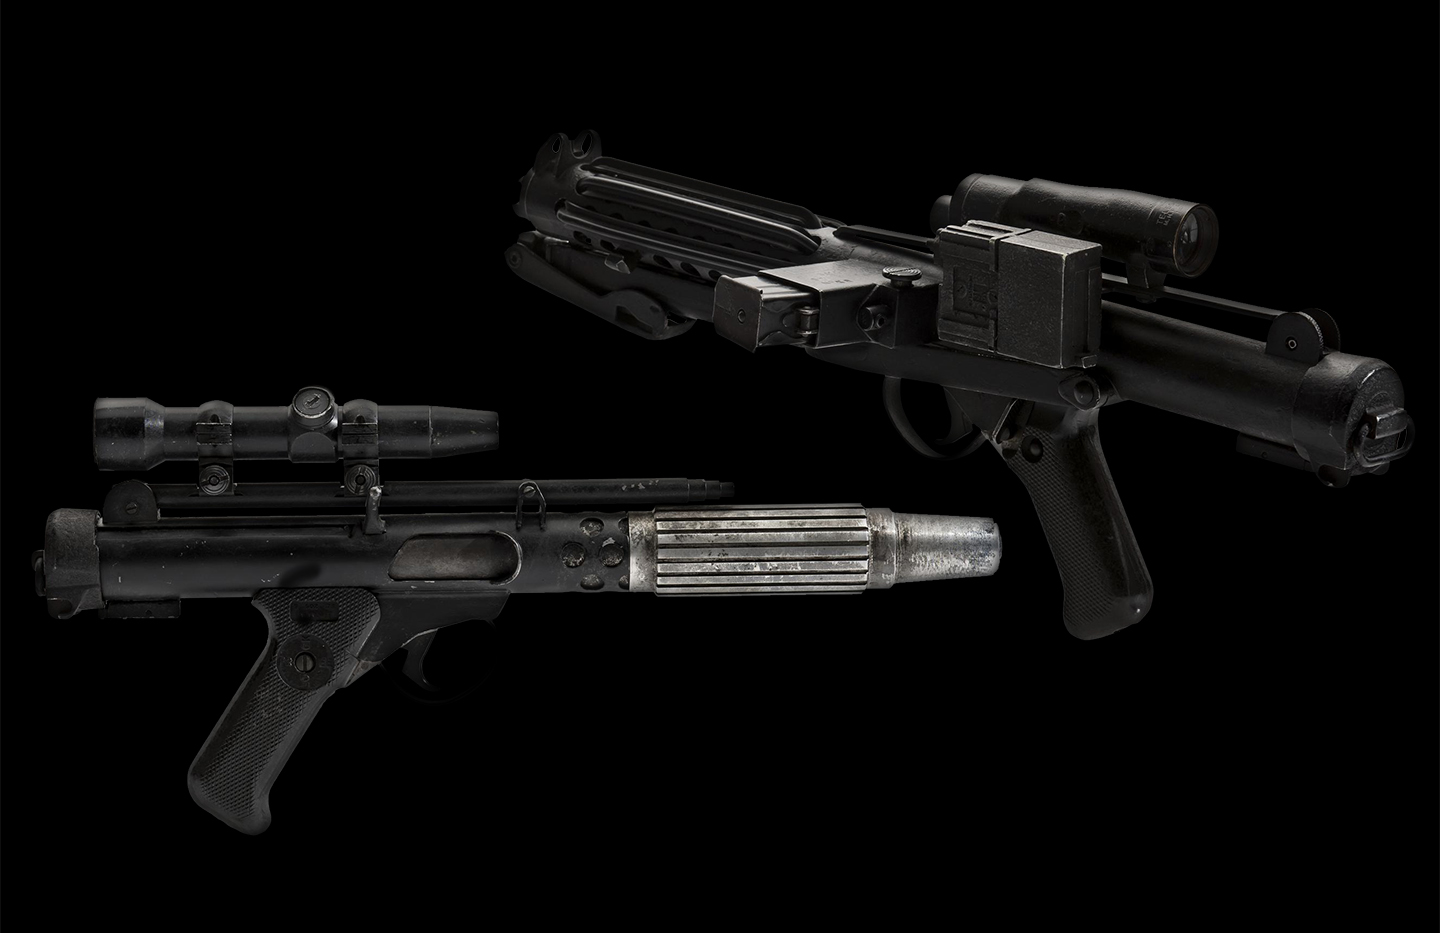 two blasters from the Star Wars movies